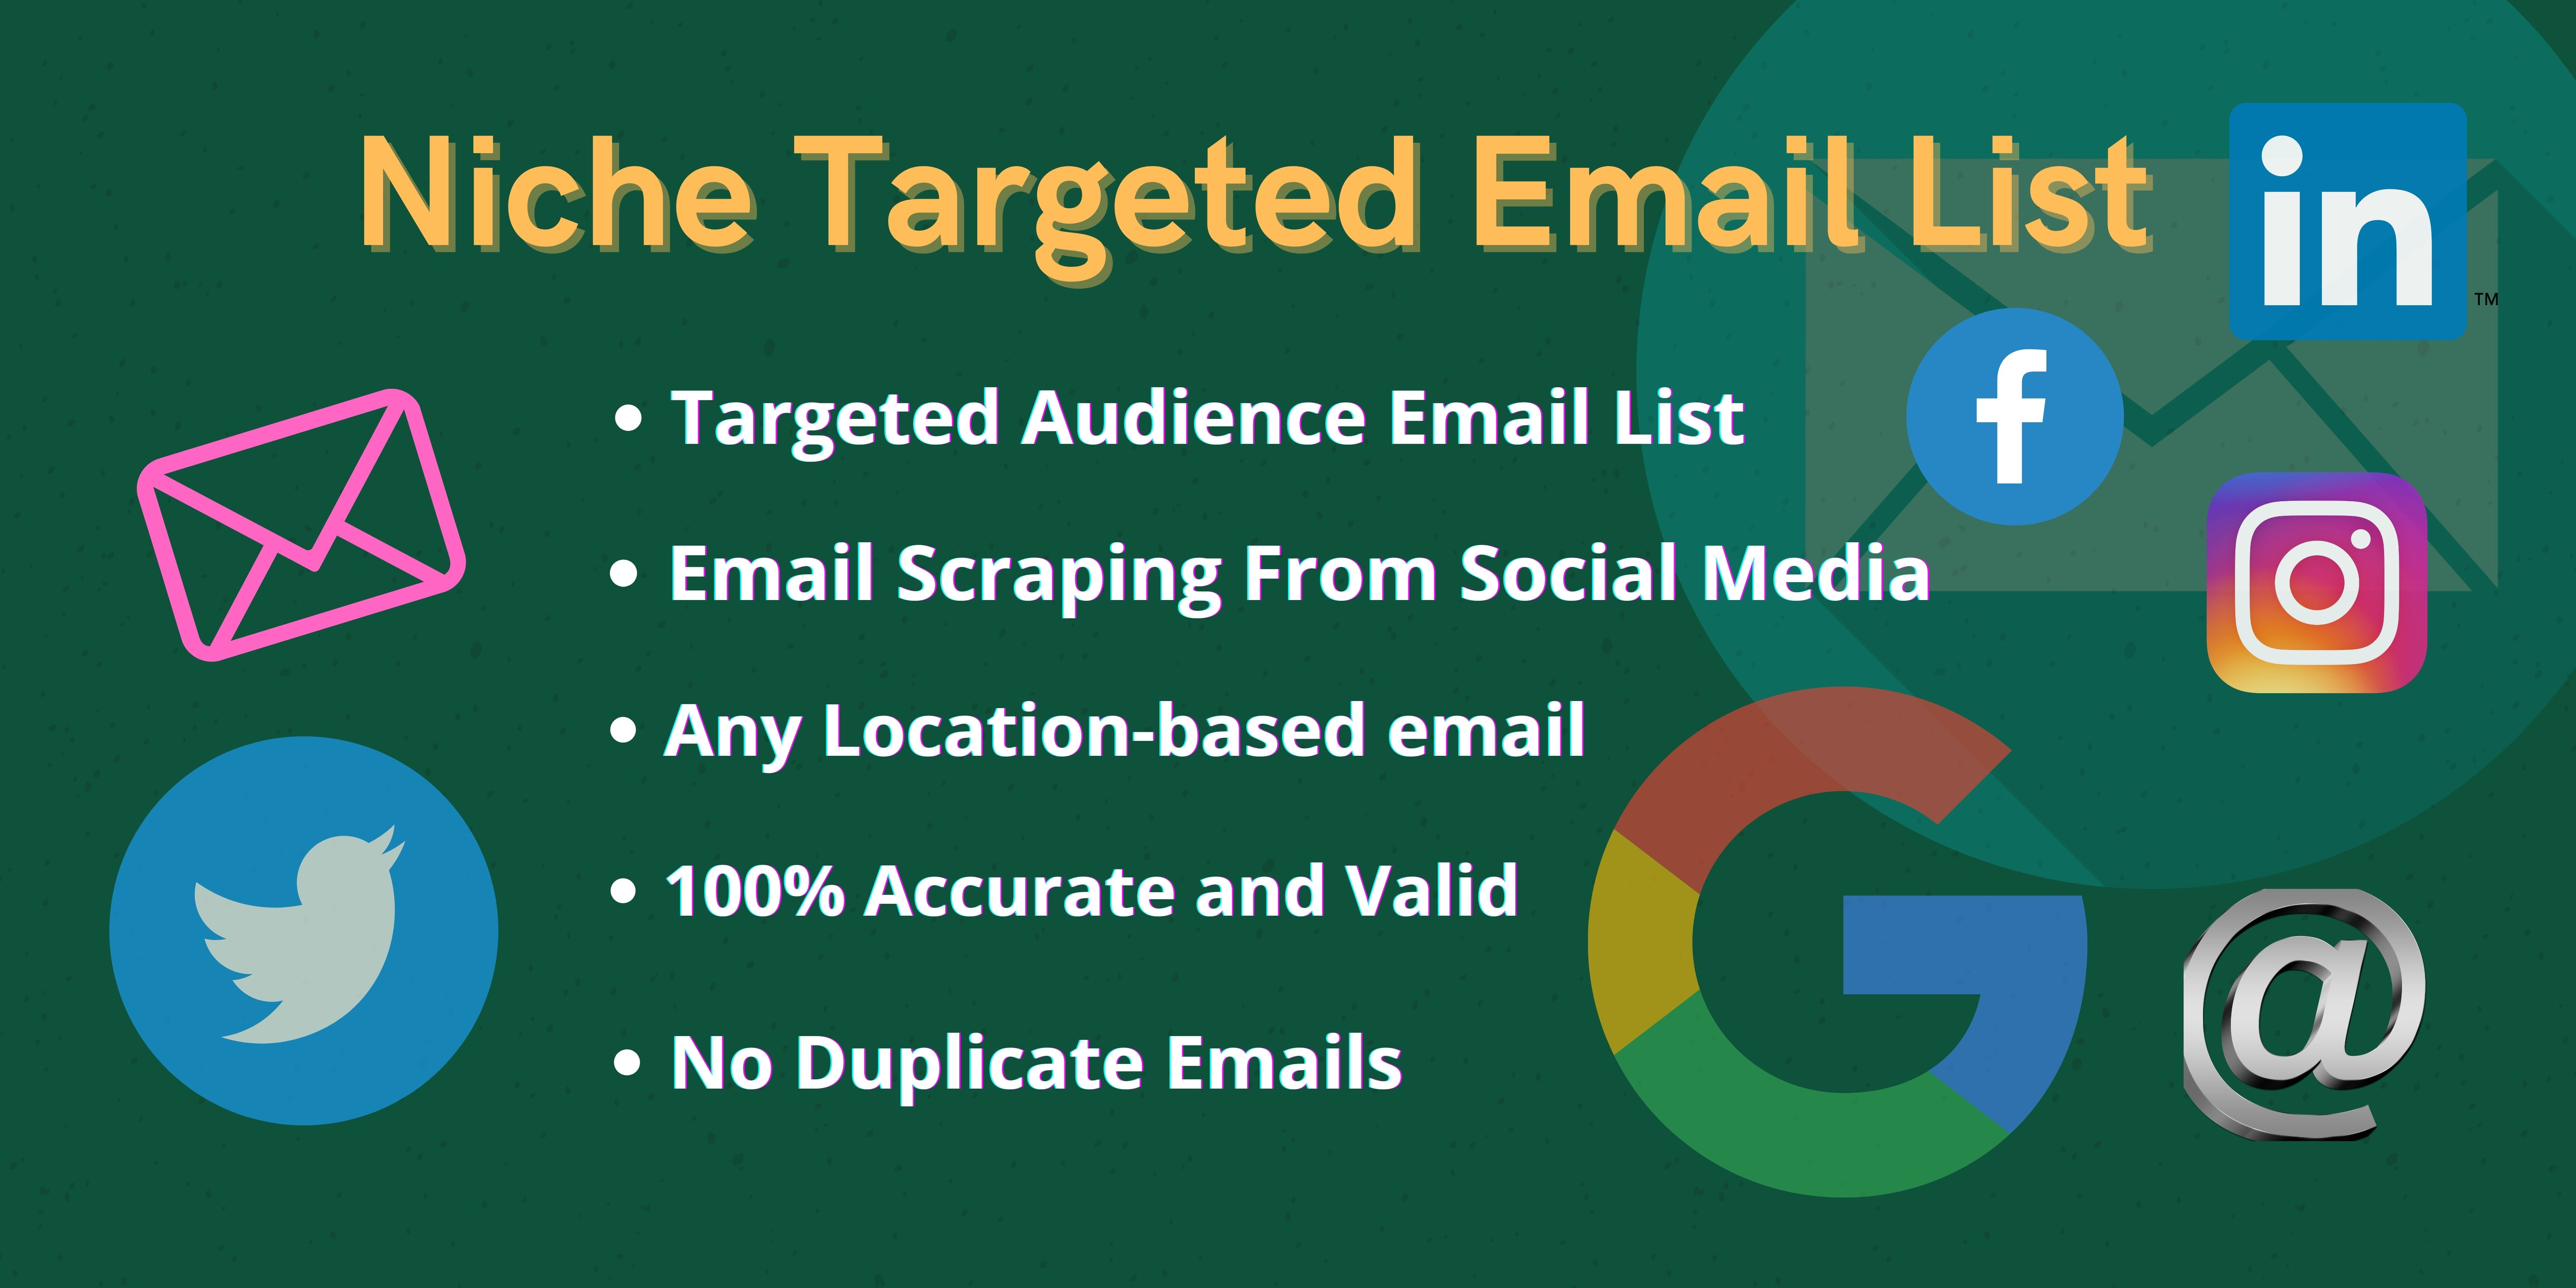 I will collect niche related and location based active email lists